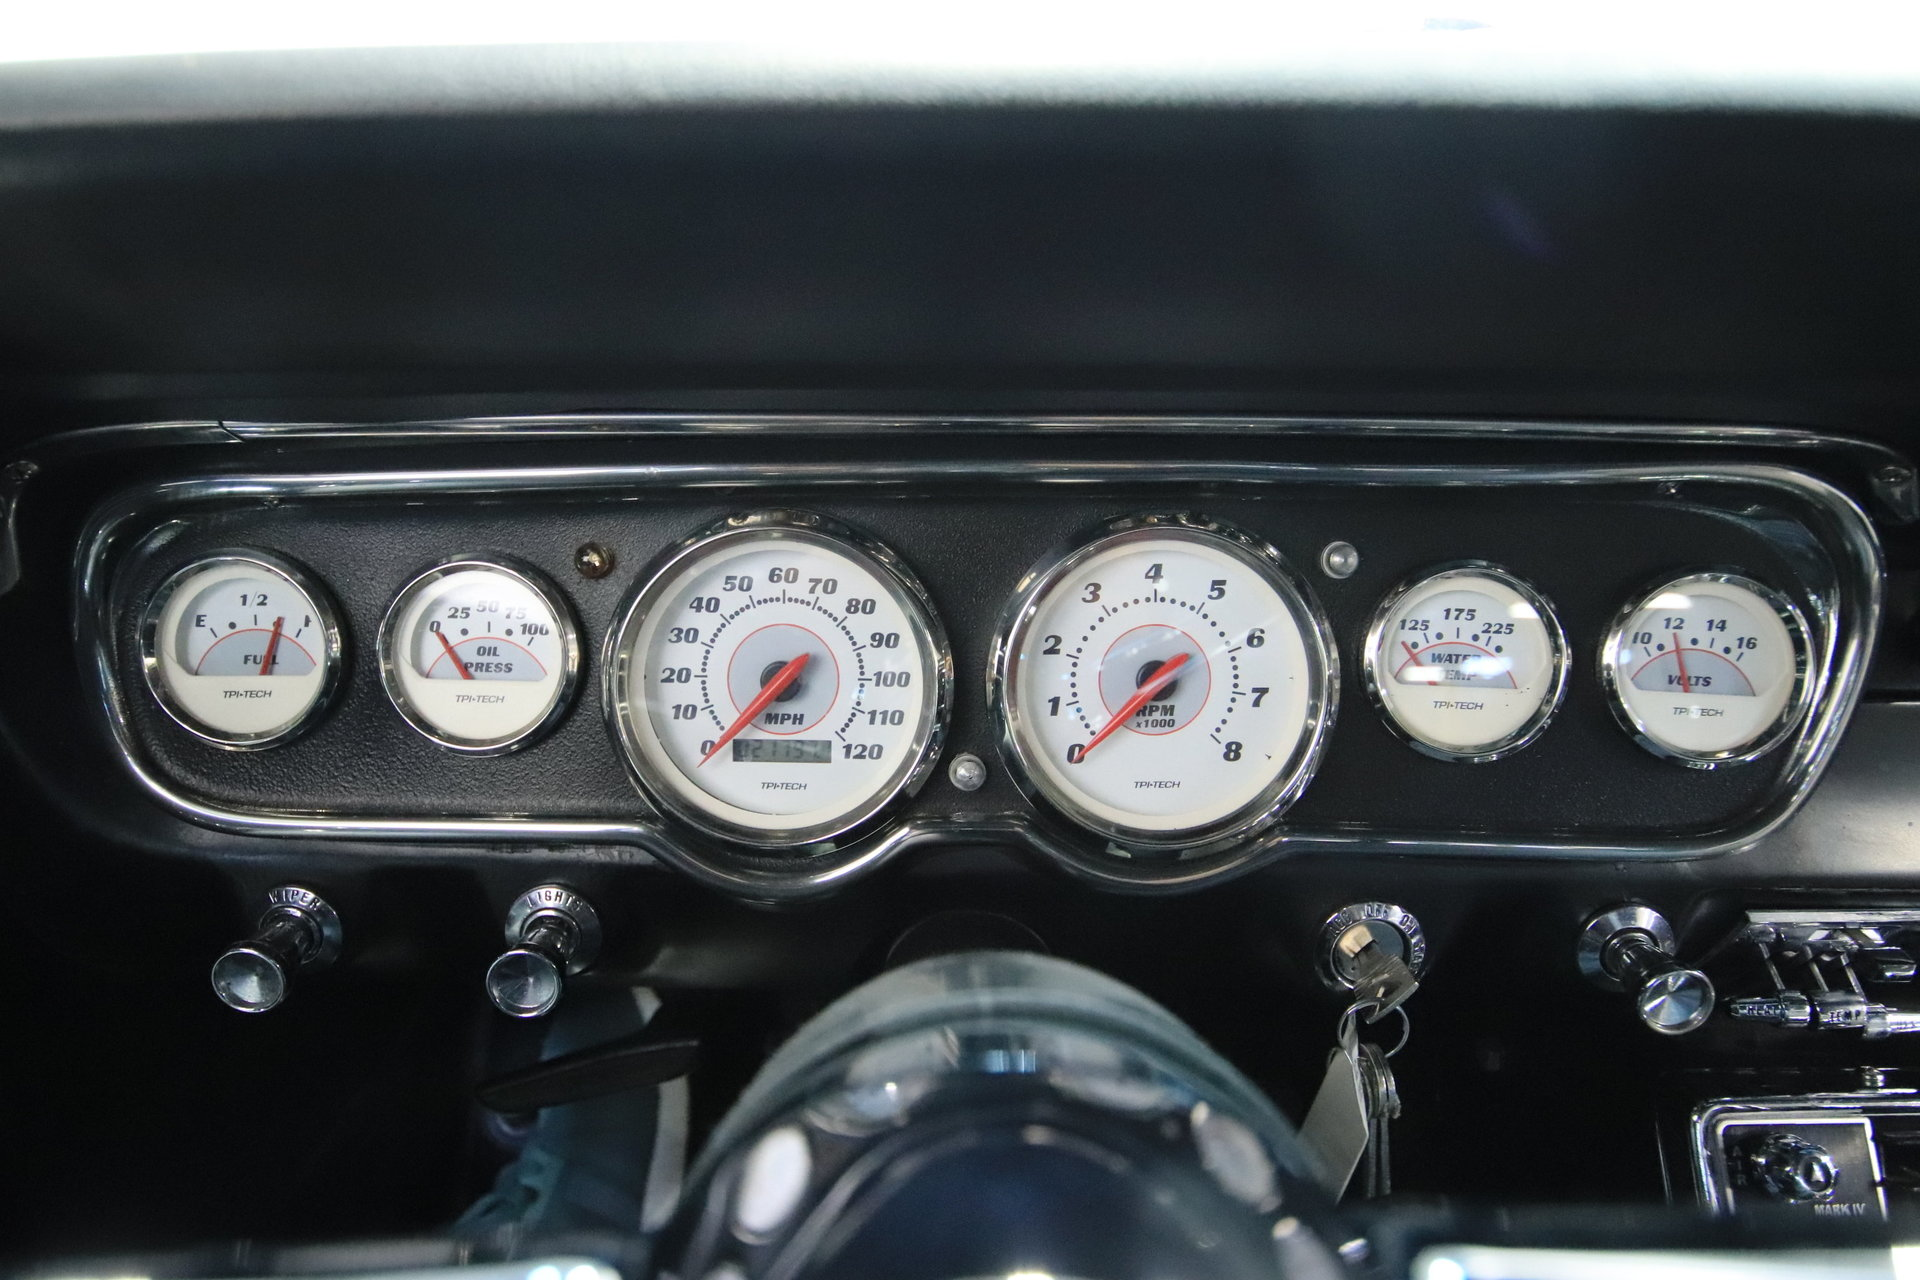 1965 Ford Mustang Streetside Classics The Nations Trusted 0 5 Tach Wiring View 360